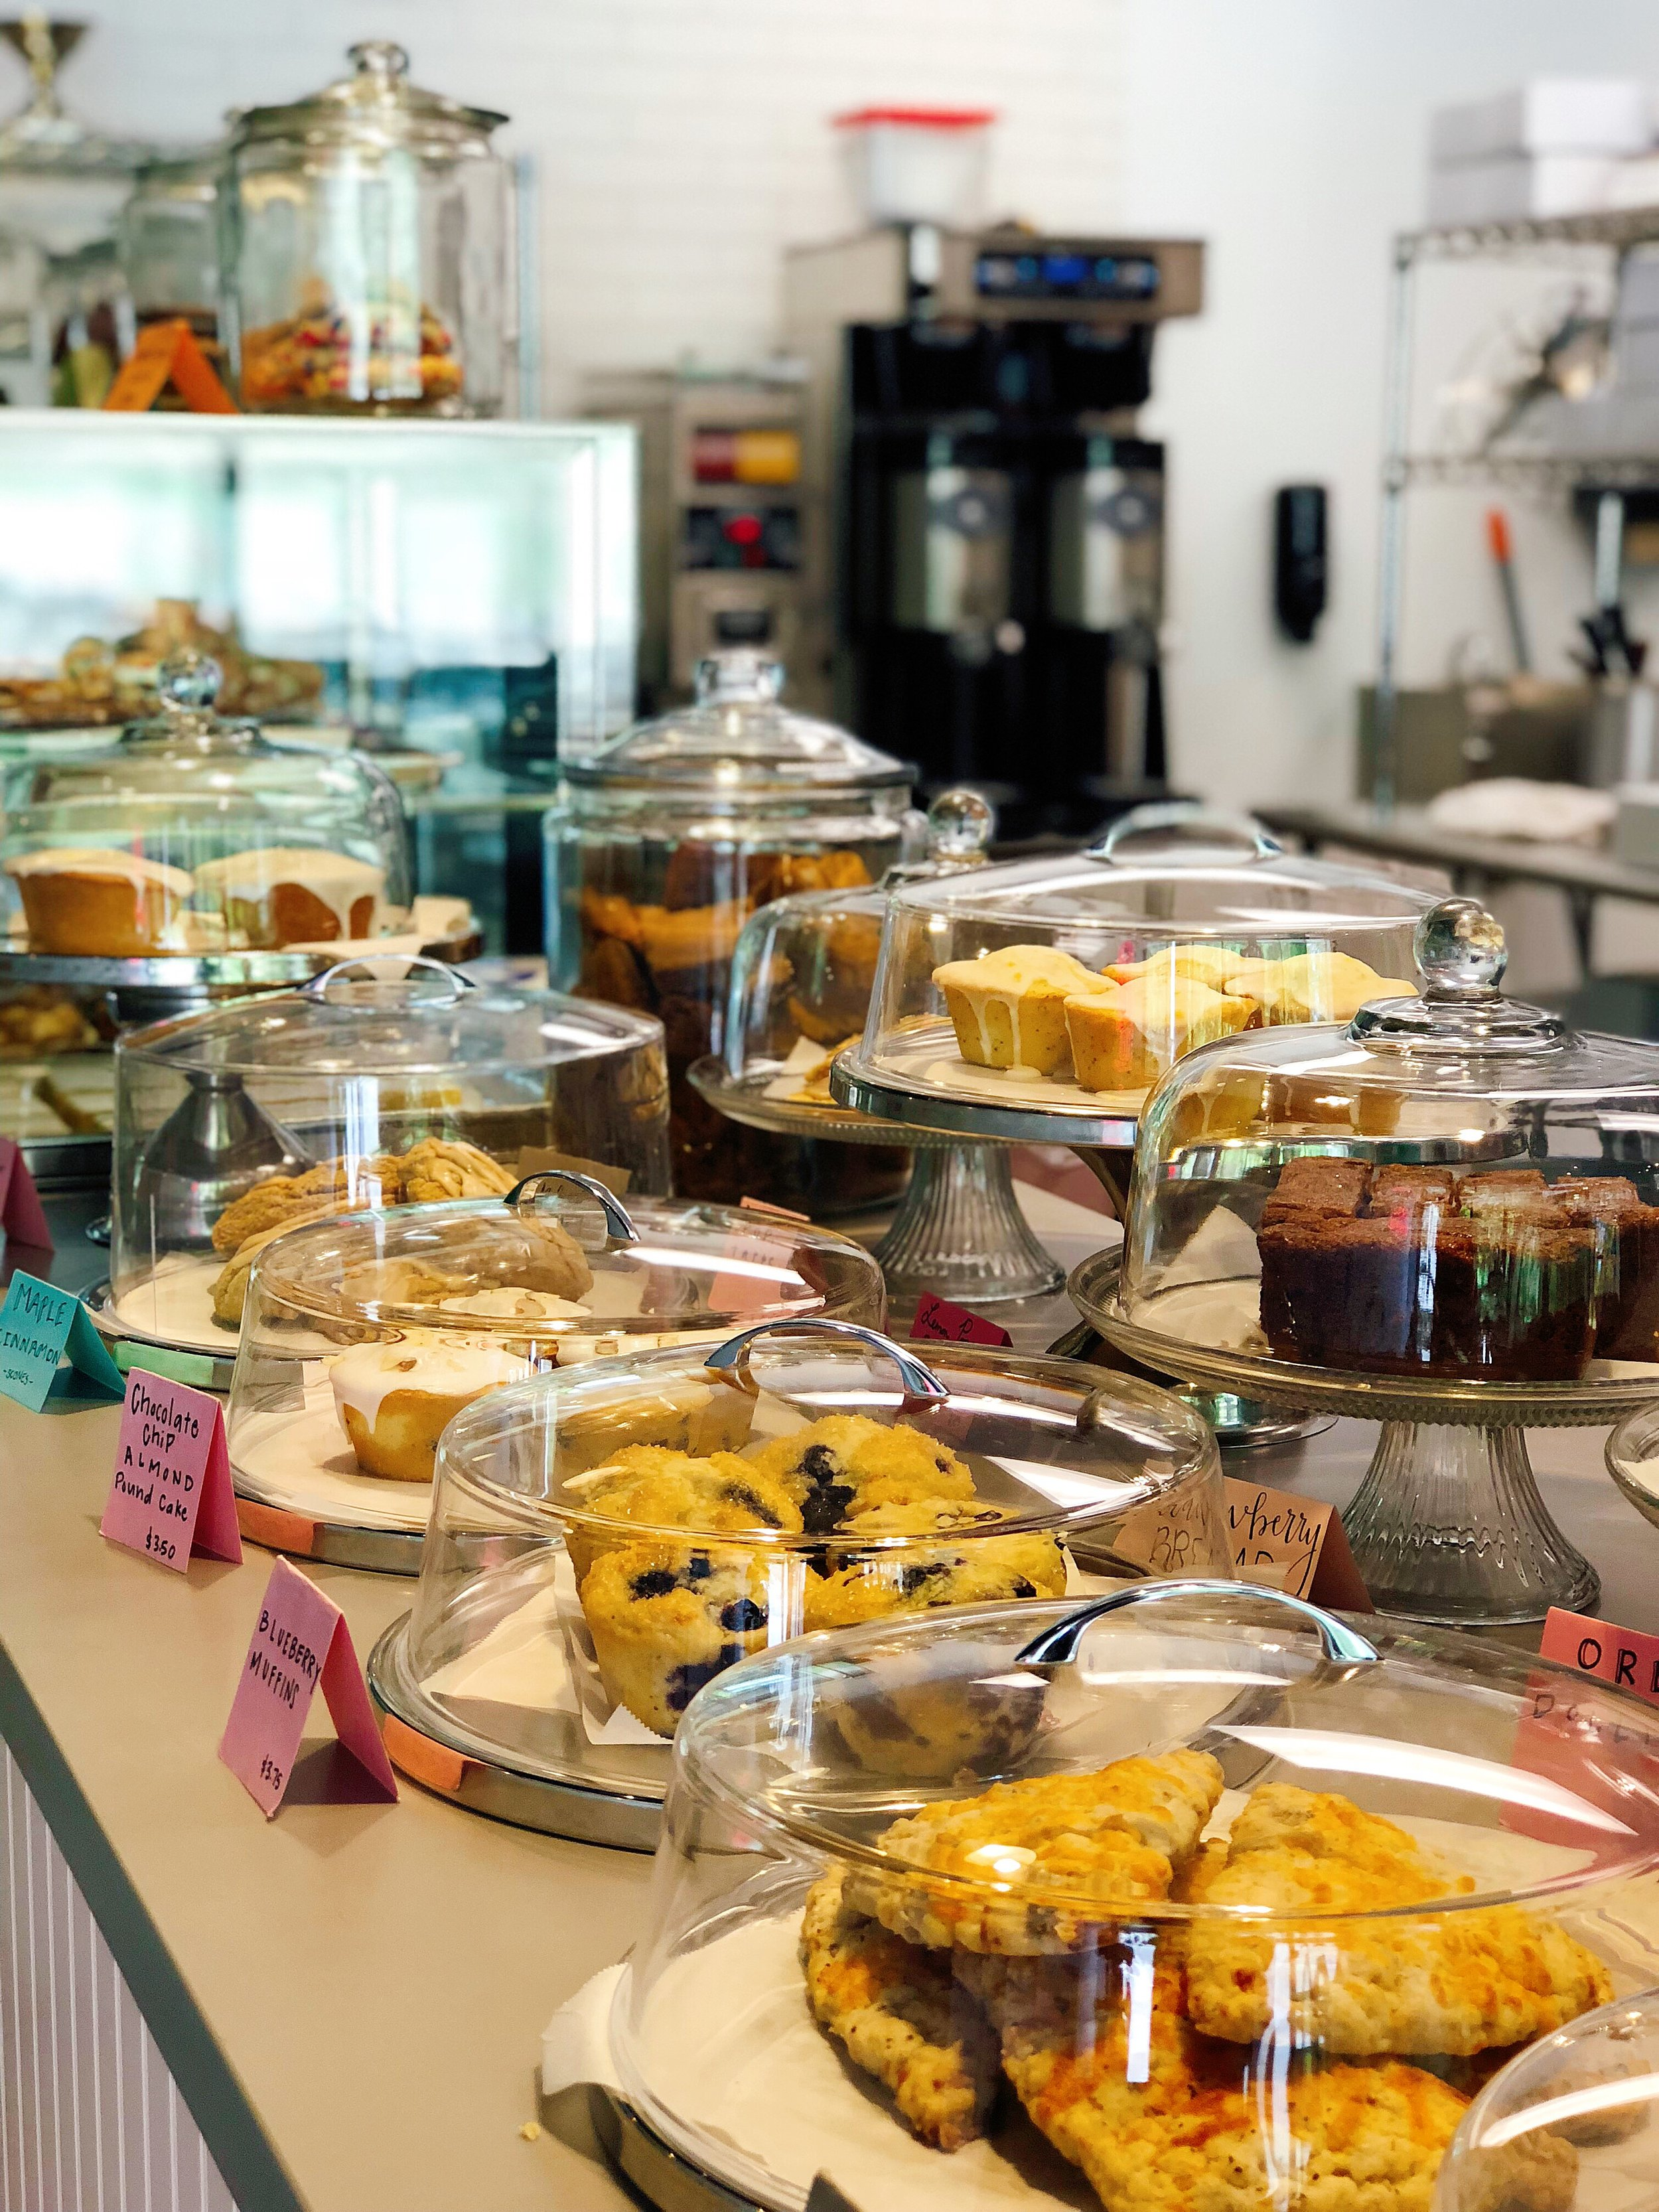 Assorted pastries, scones, breads and brownies